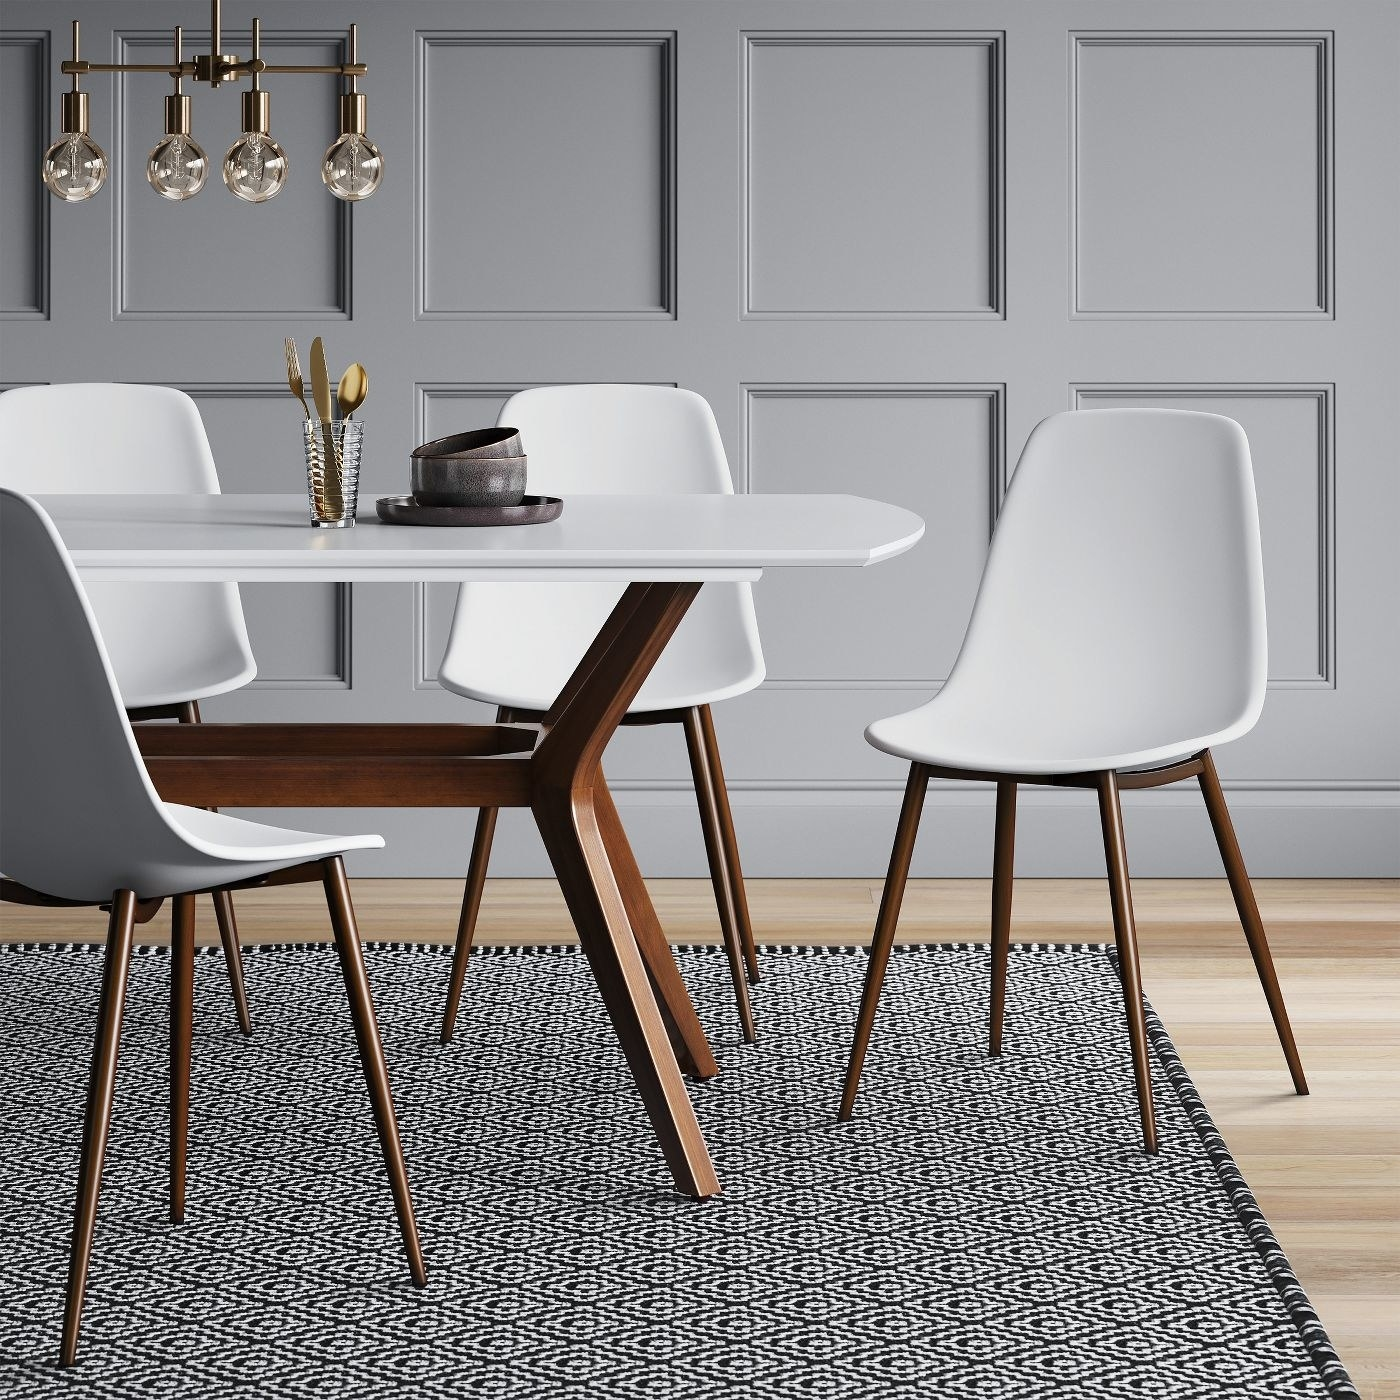 white plastic dining chairs with wooden legs next to a table